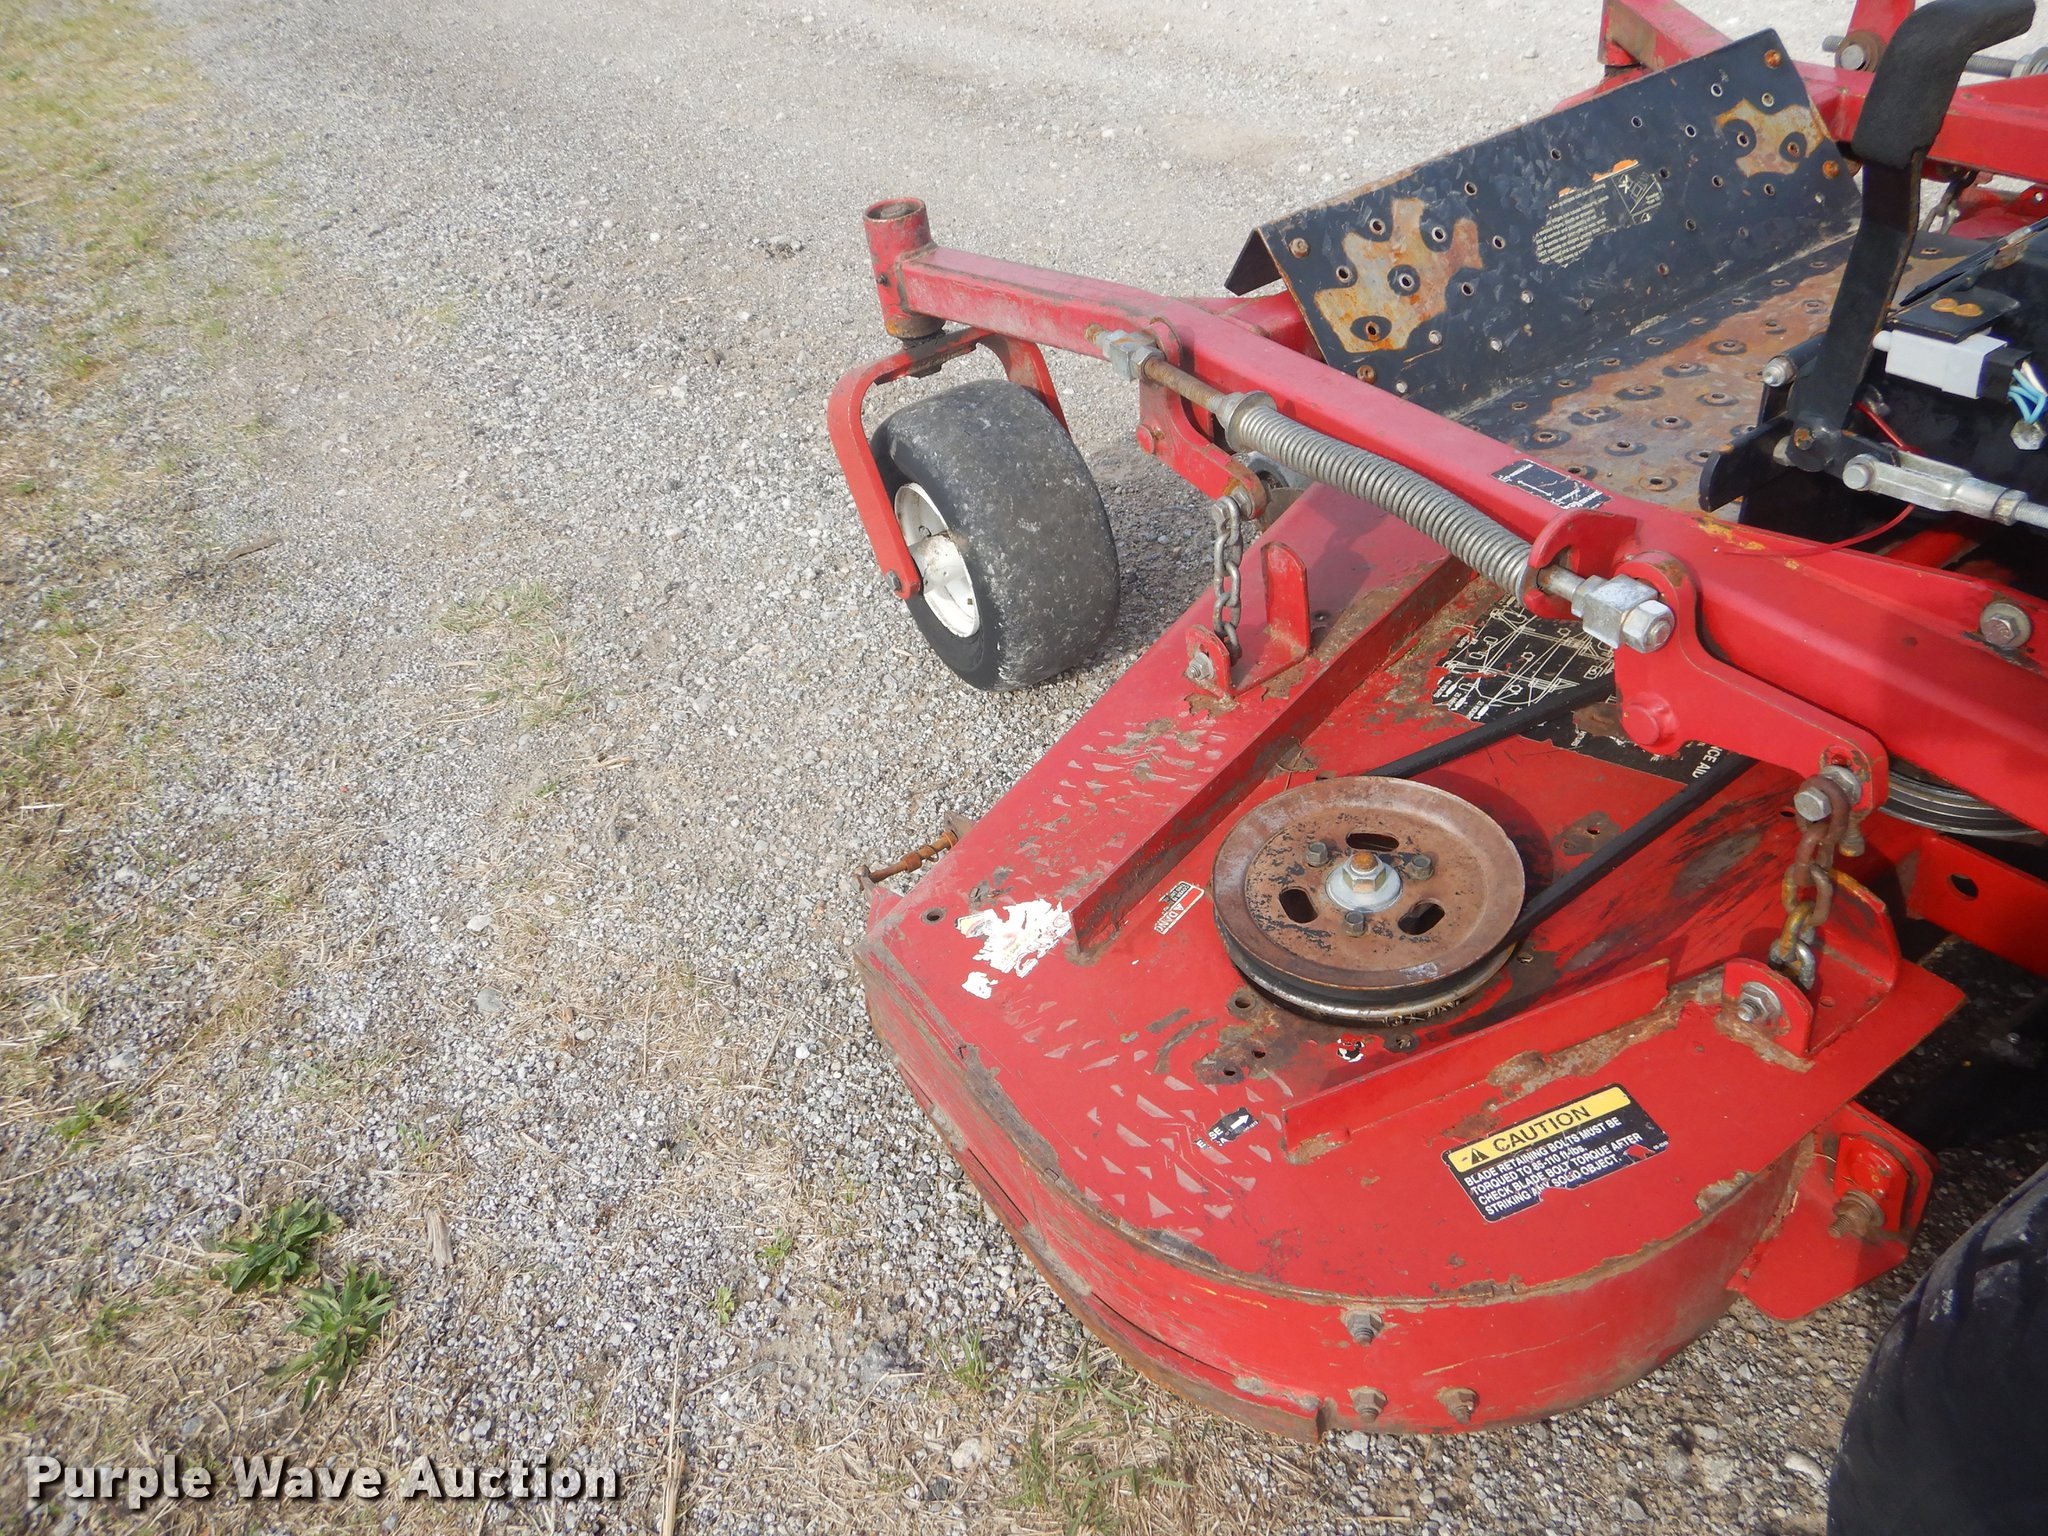 Toro Z Master 74244 ZTR lawn mower | Item FH9255 | SOLD! May